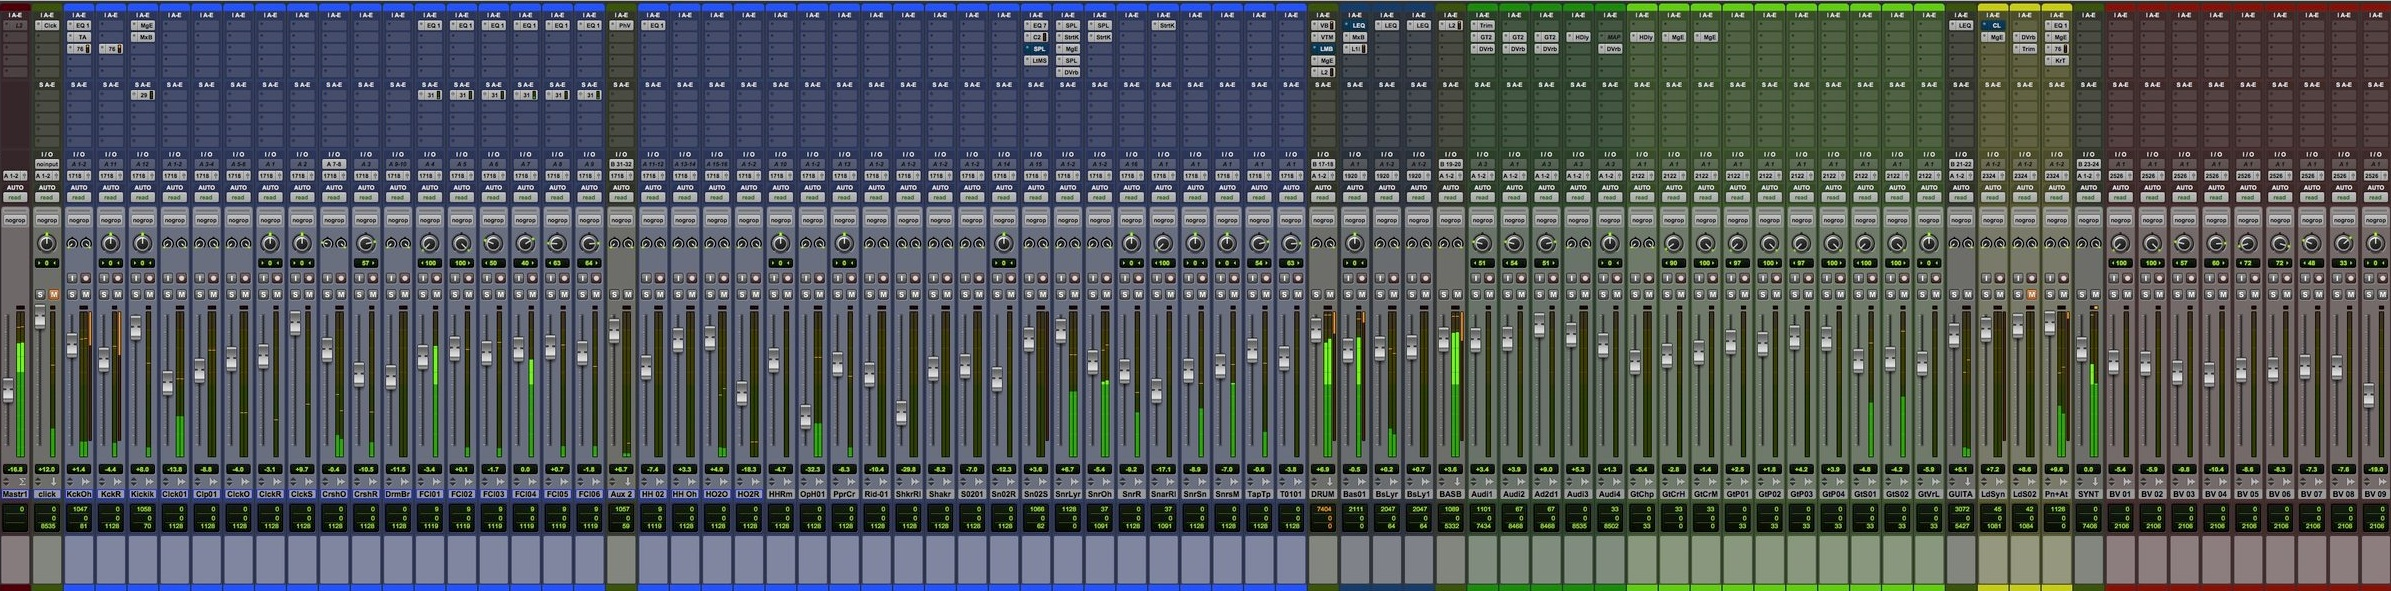 This particular session for a song has double the amount of tracks than what is shown in this image